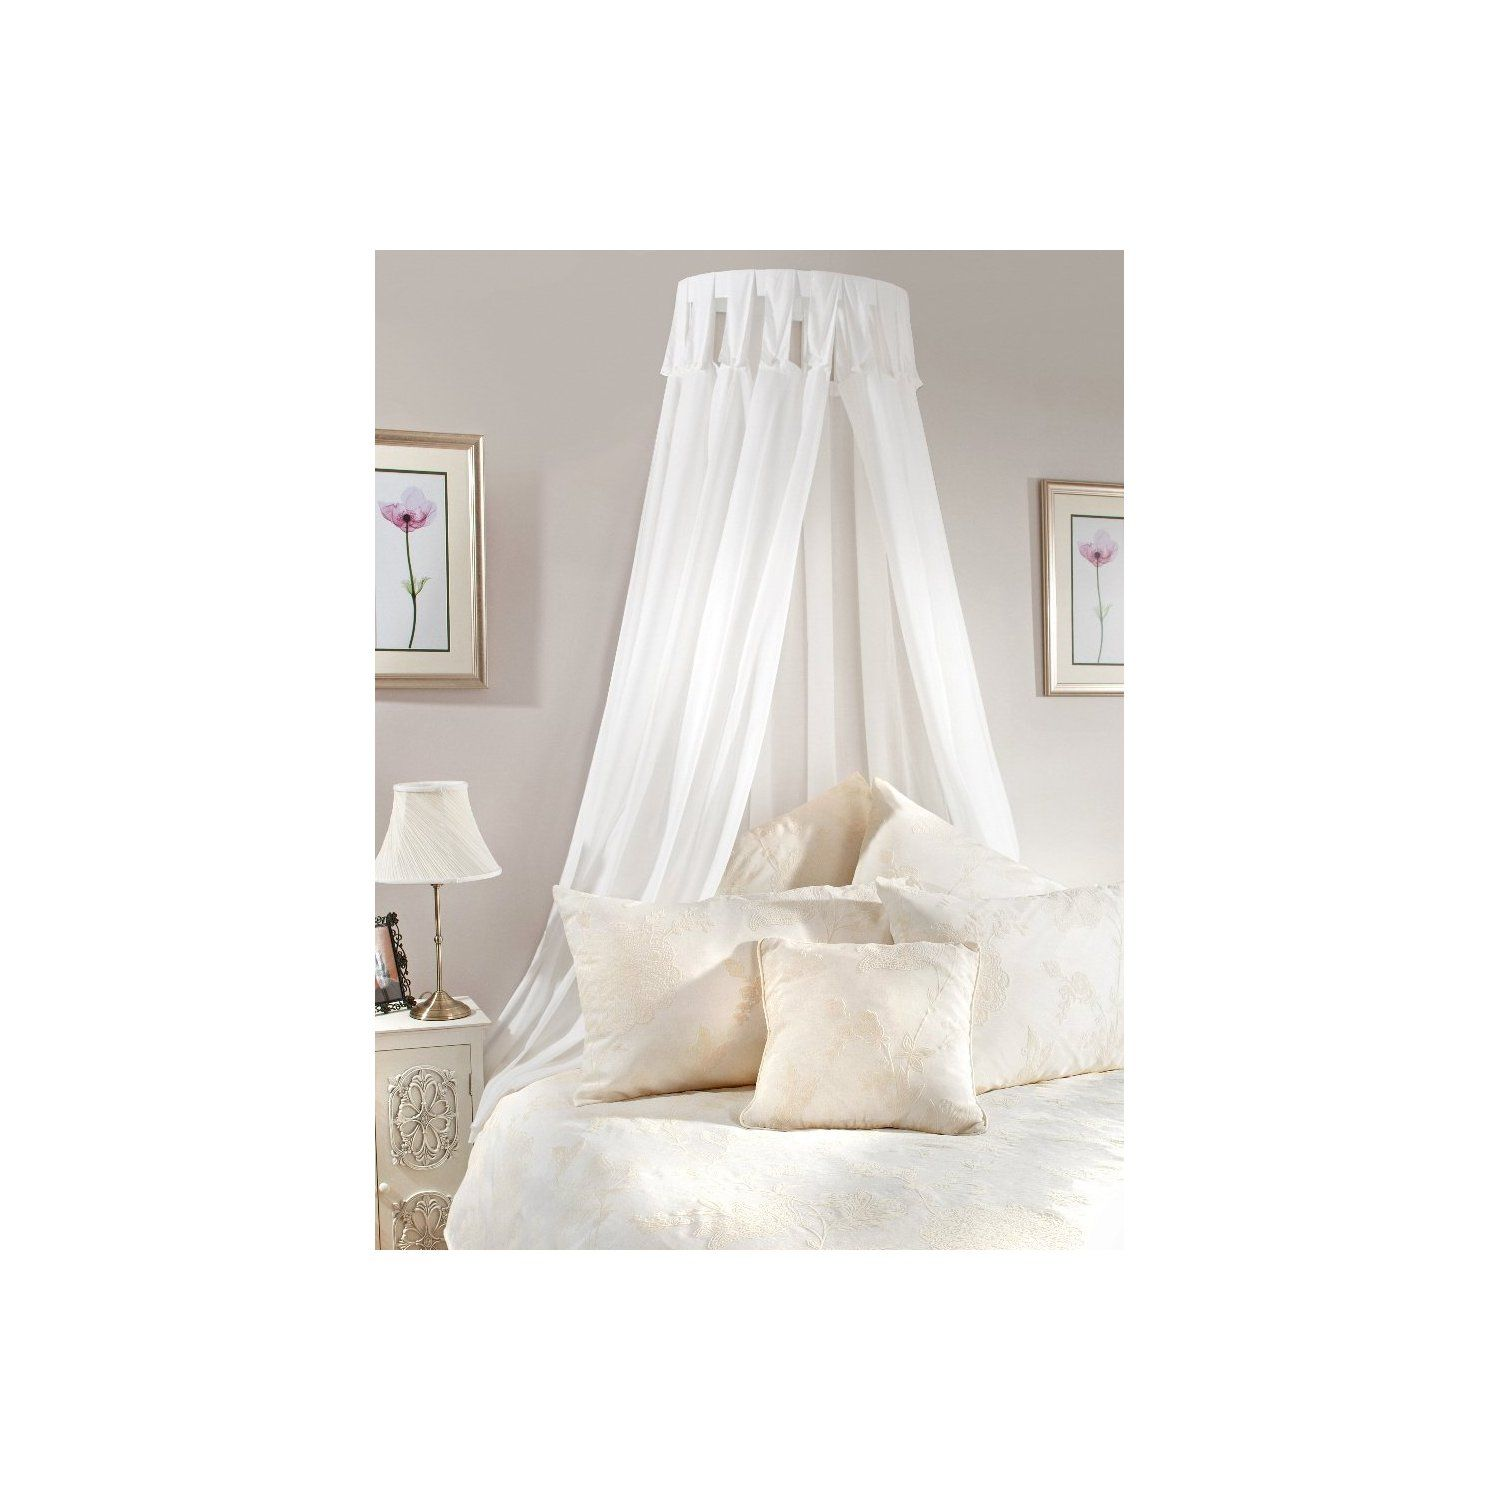 for drapes metal and coronet picture girls bed trends girl white twin princess size drape beds canopy